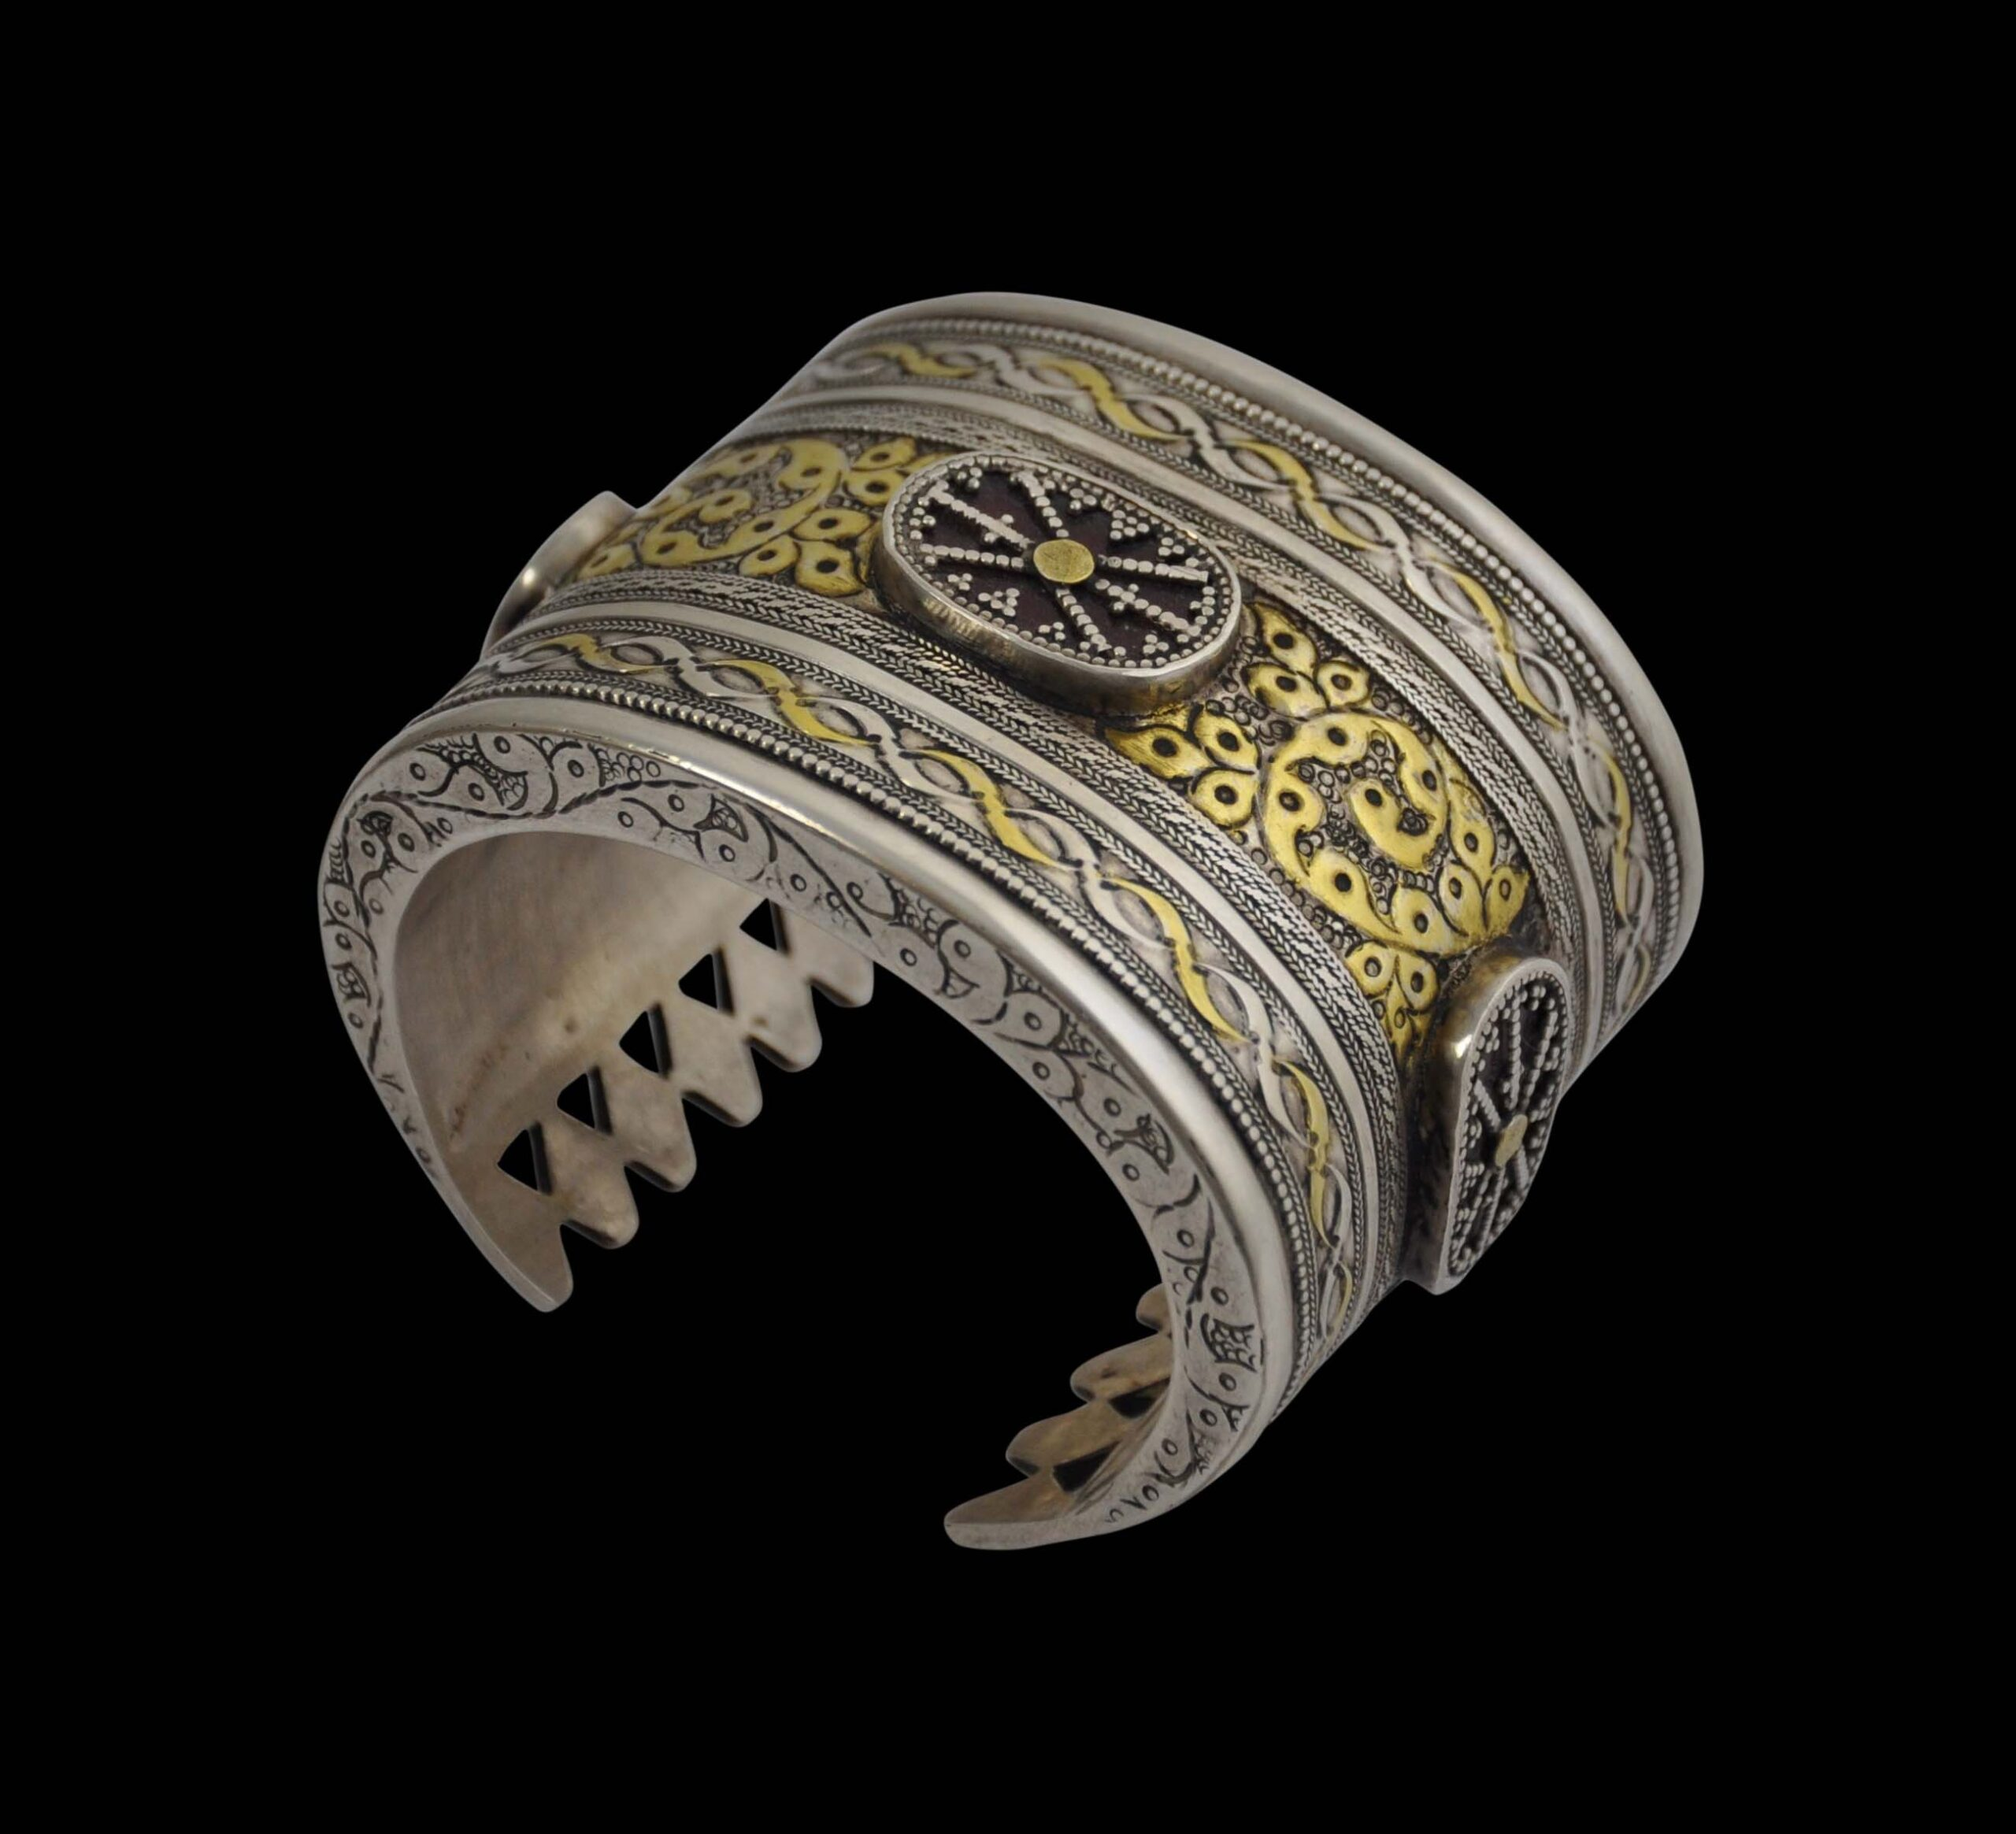 HOW TO BUY THE KAZAKH JEWELRY?